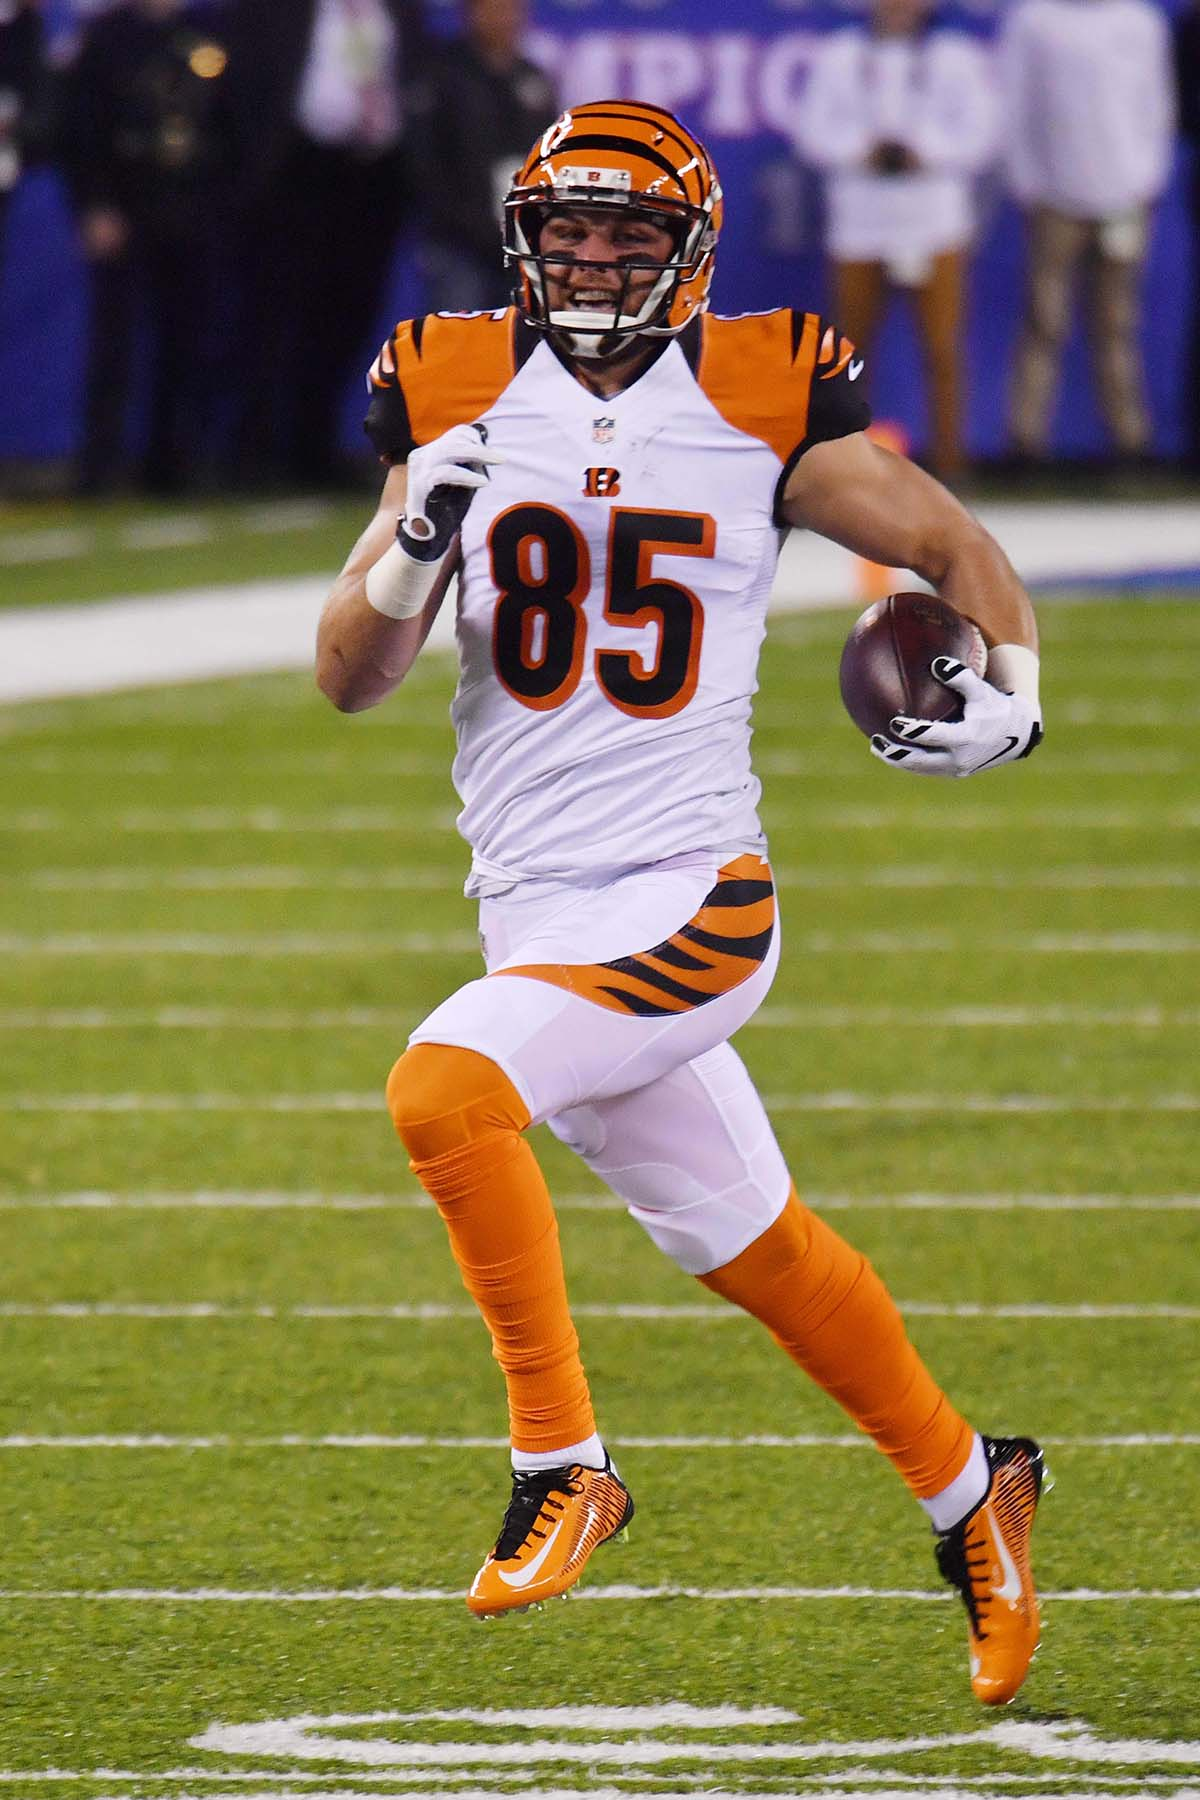 Bengals tight end TYLER EIFERT races down the sideline Gold